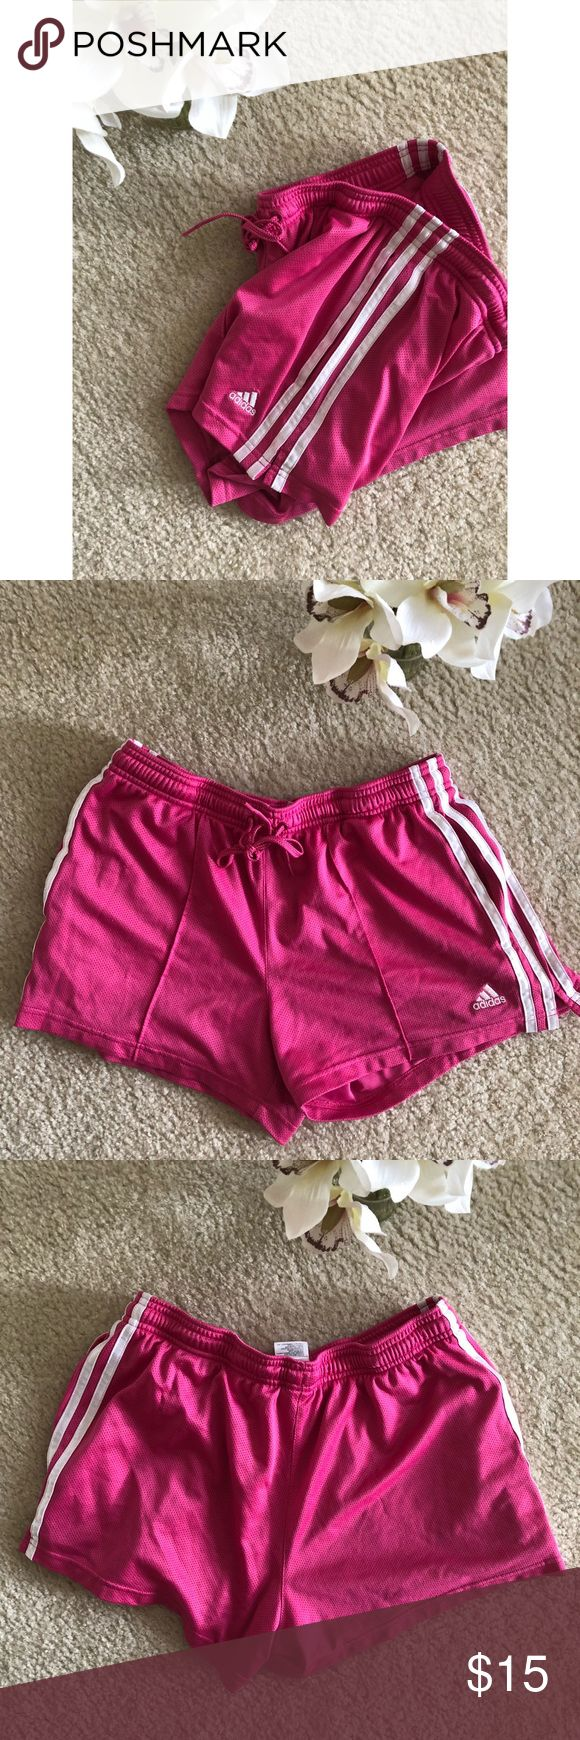 Pink Adidas Soccer Shorts ♀️ Pink Adidas Soccer Shorts in pre loved condition. Very stylish and an in demand brand! Great workout piece to add to your wardrobe! ✨ adidas Shorts #soccerworkouts